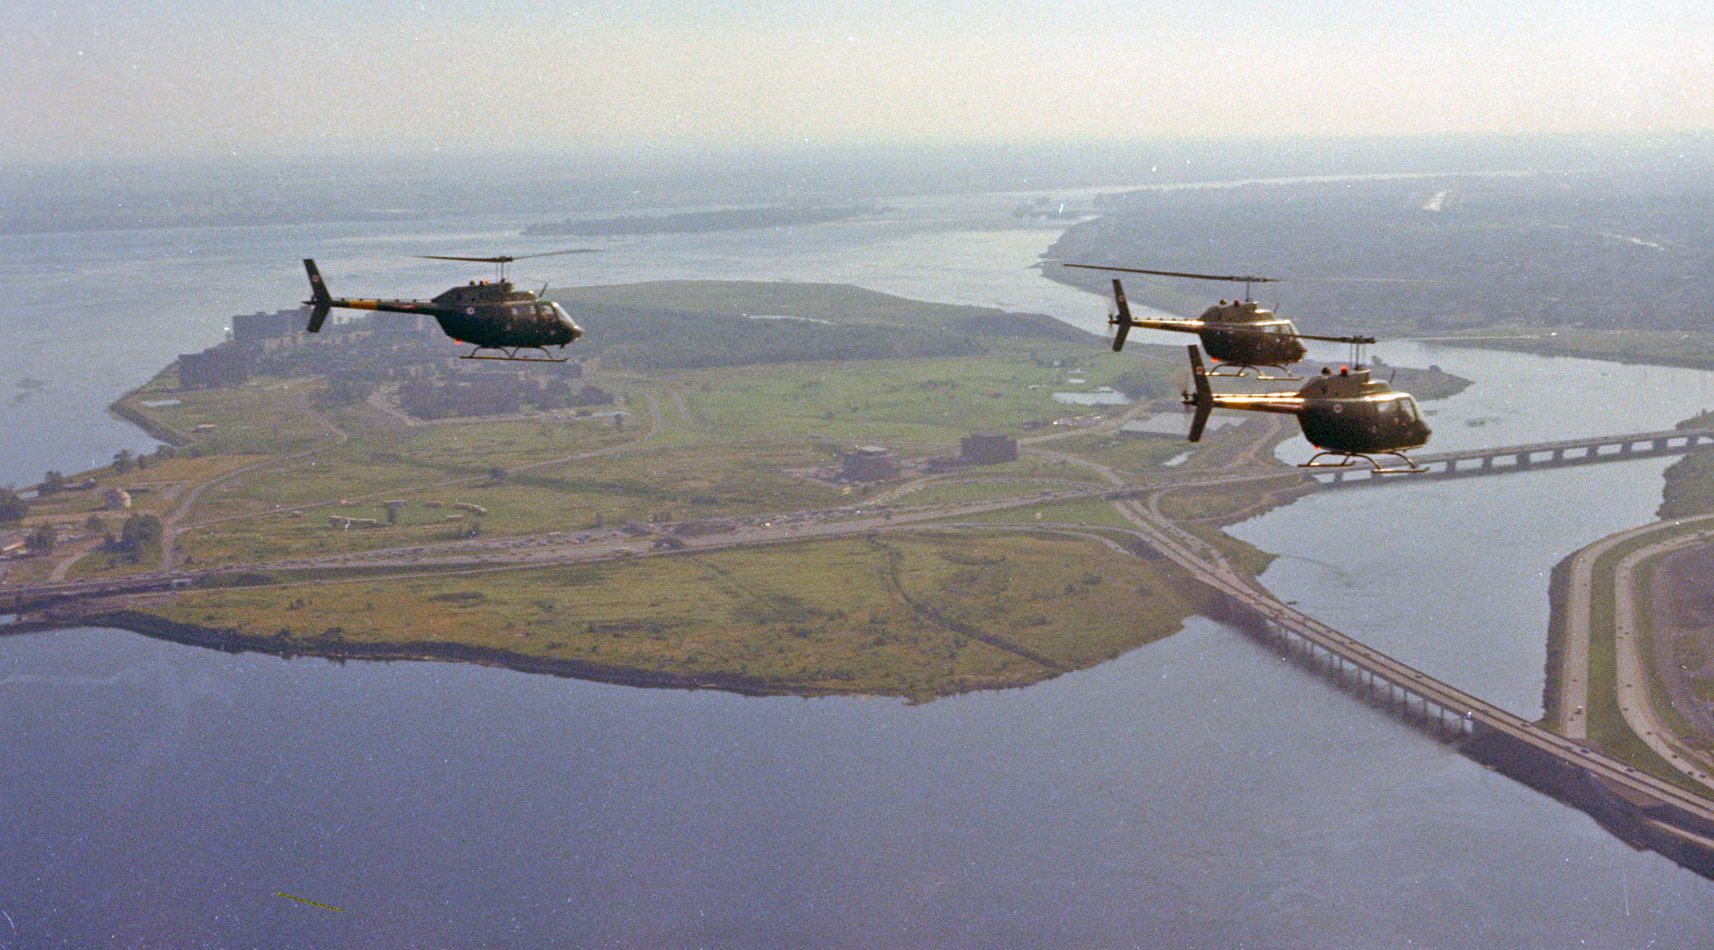 Three 427 Squadron CH-136 Kiowa helicopters from Petawawa, Ontario, fly over Nun's Island in Montreal during Exercise Power Play in August 1974. 427 Squadron began operating CH-136 Kiowa light observation helicopters in the 1970s. PHOTO: DND Archives, IMC74-123